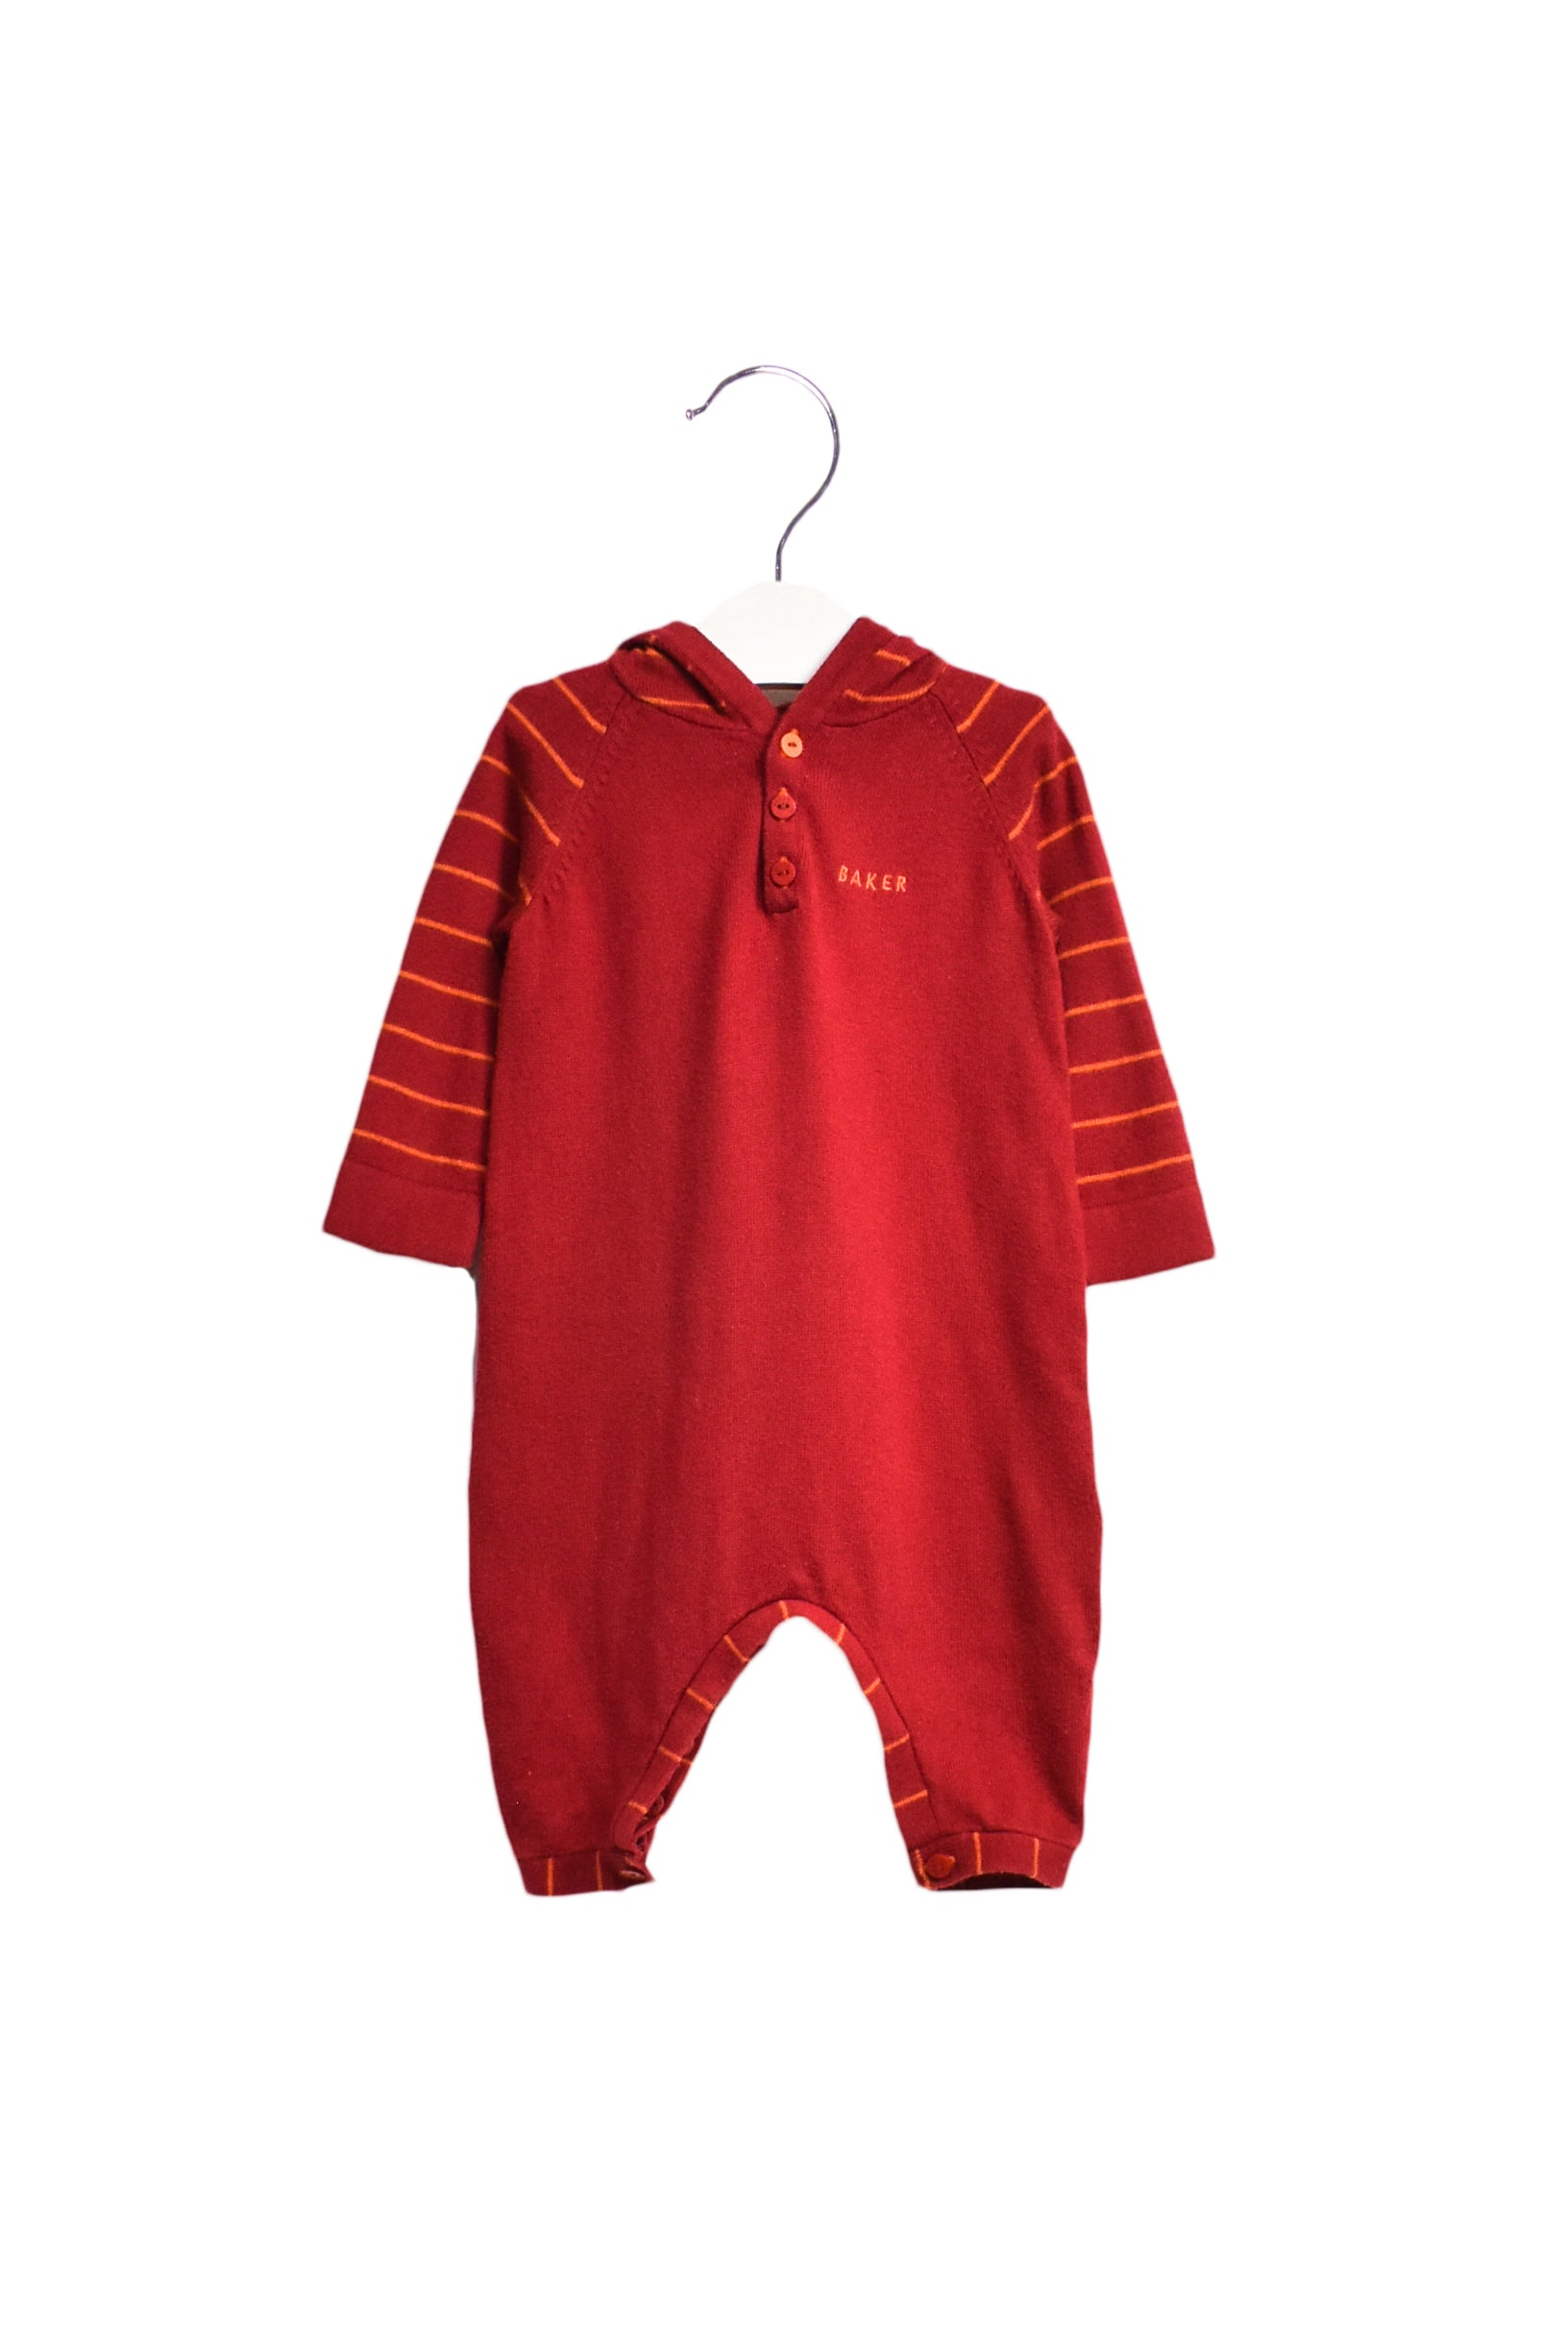 8ed05715250d 10020203 Baker by Ted Baker Baby~Jumpsuit 0-3M at Retykle